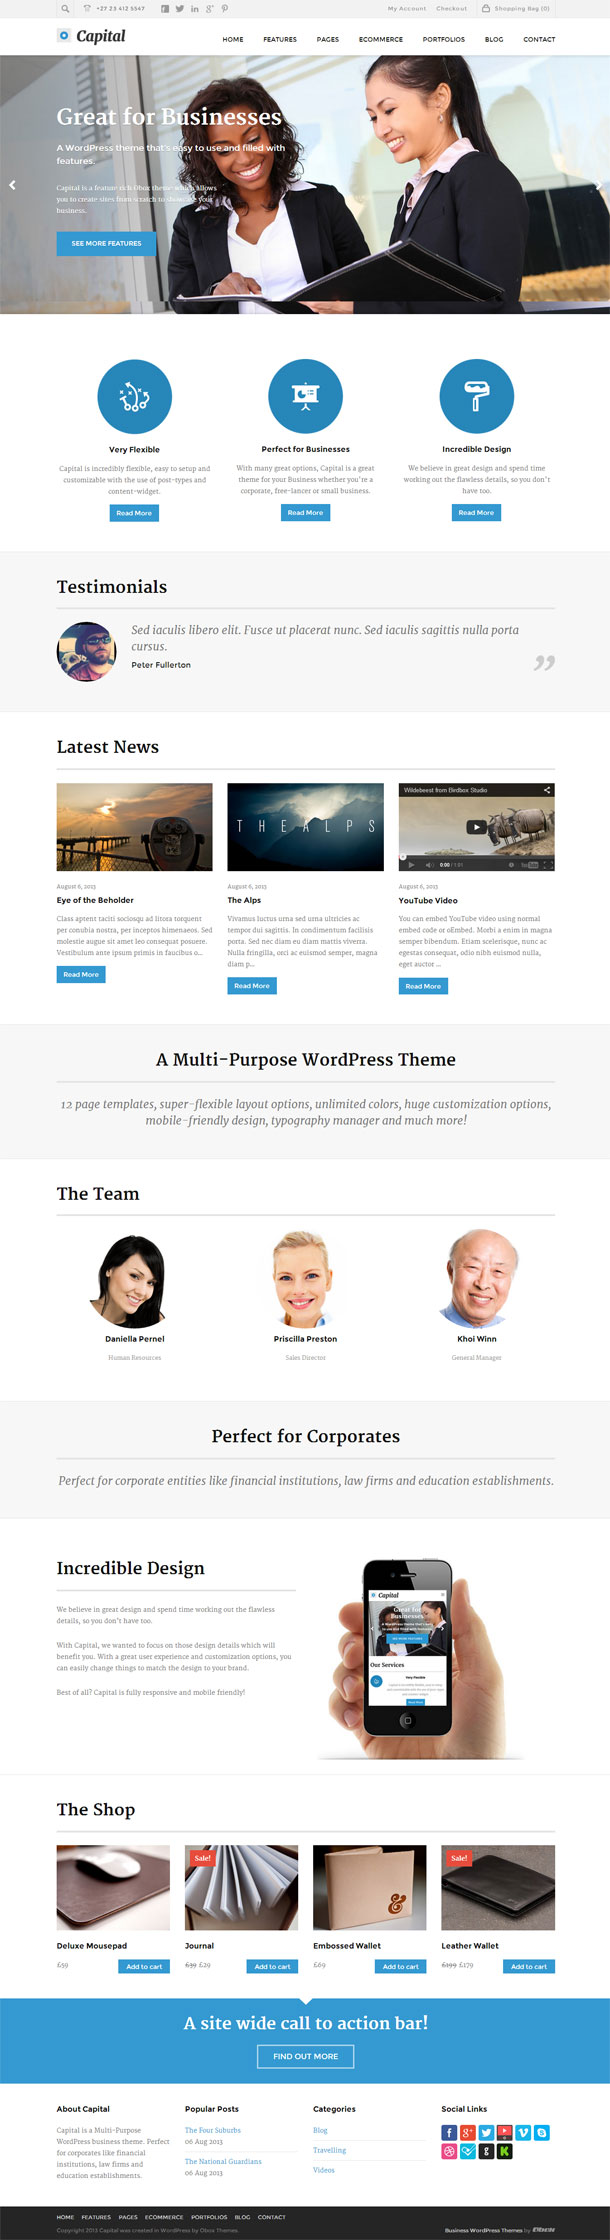 Capital Business Theme Image